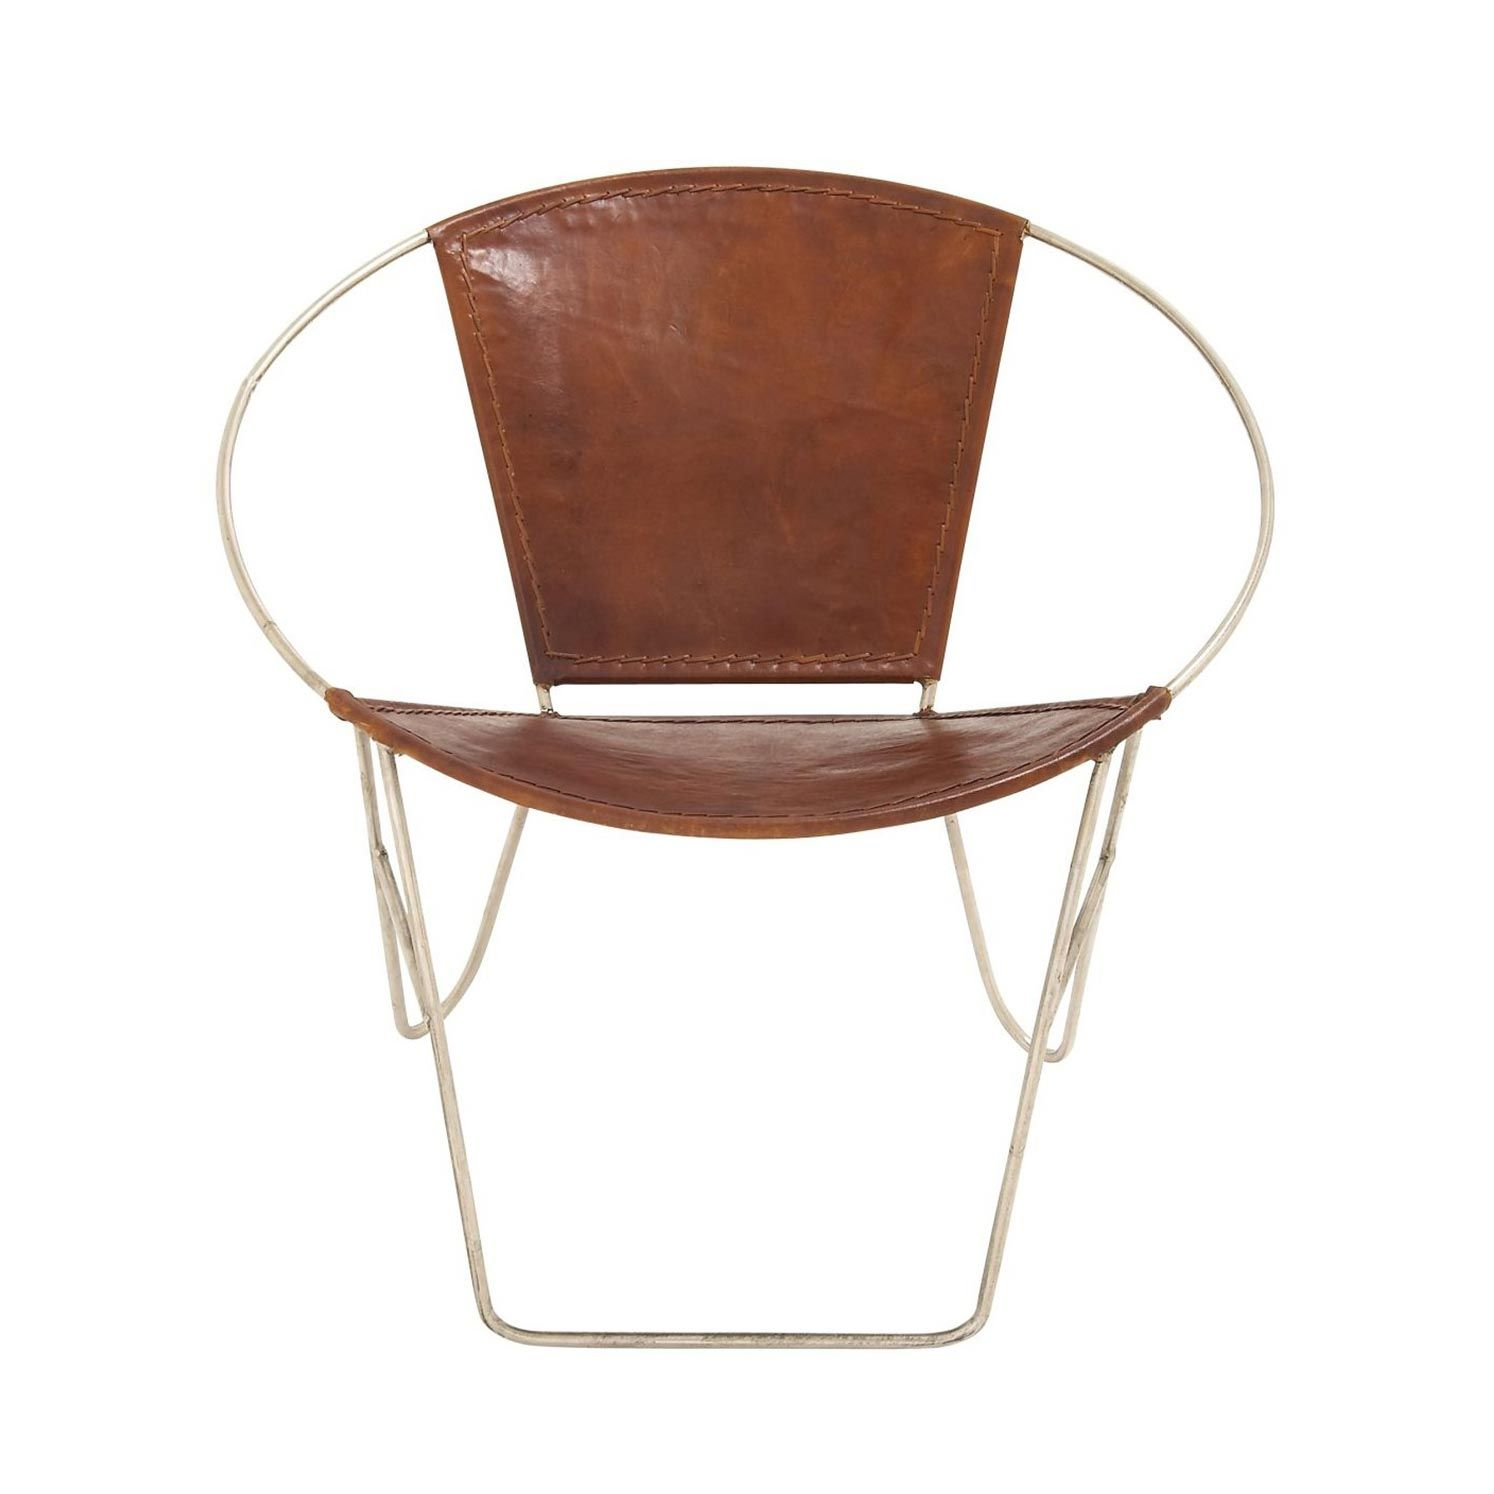 Marvelous Lasso Leather Chair Dot Bo Office Inspiration Metal Uwap Interior Chair Design Uwaporg